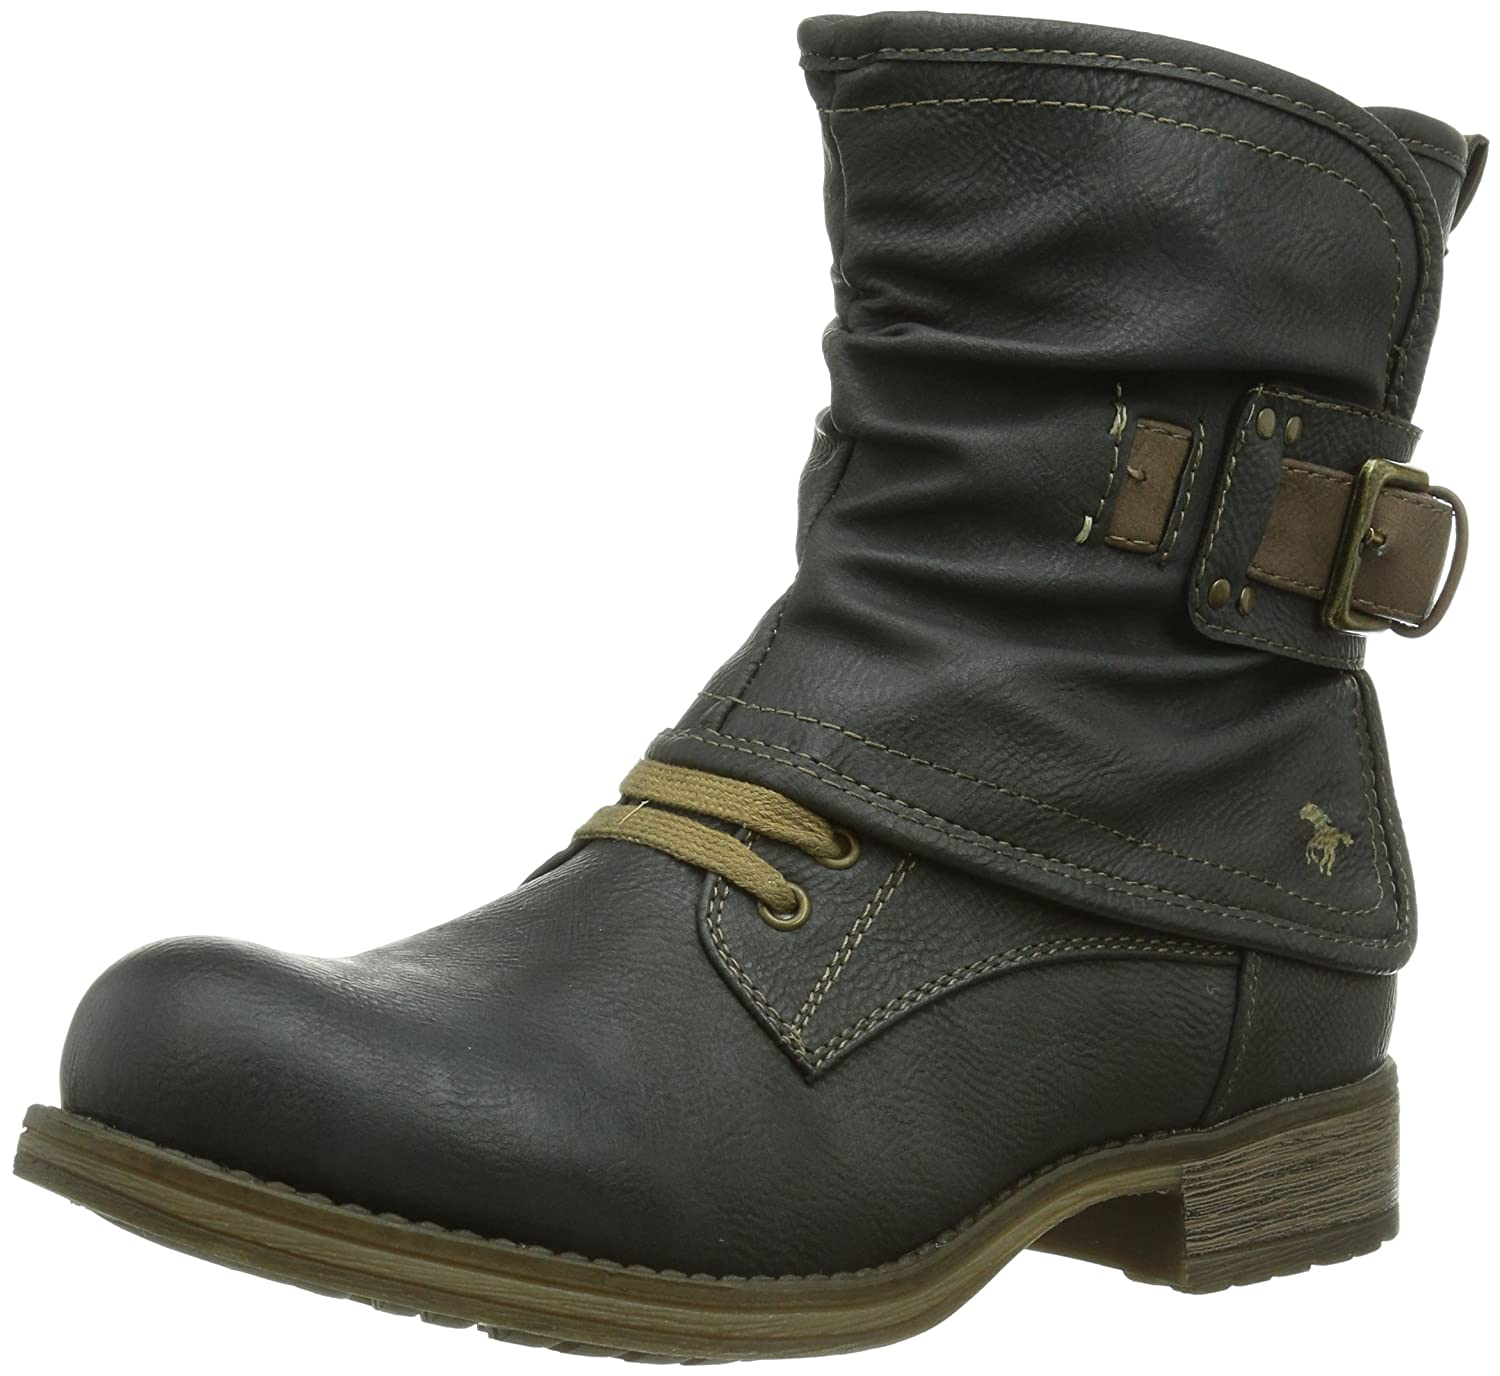 Mustang 5026607, Boots fille